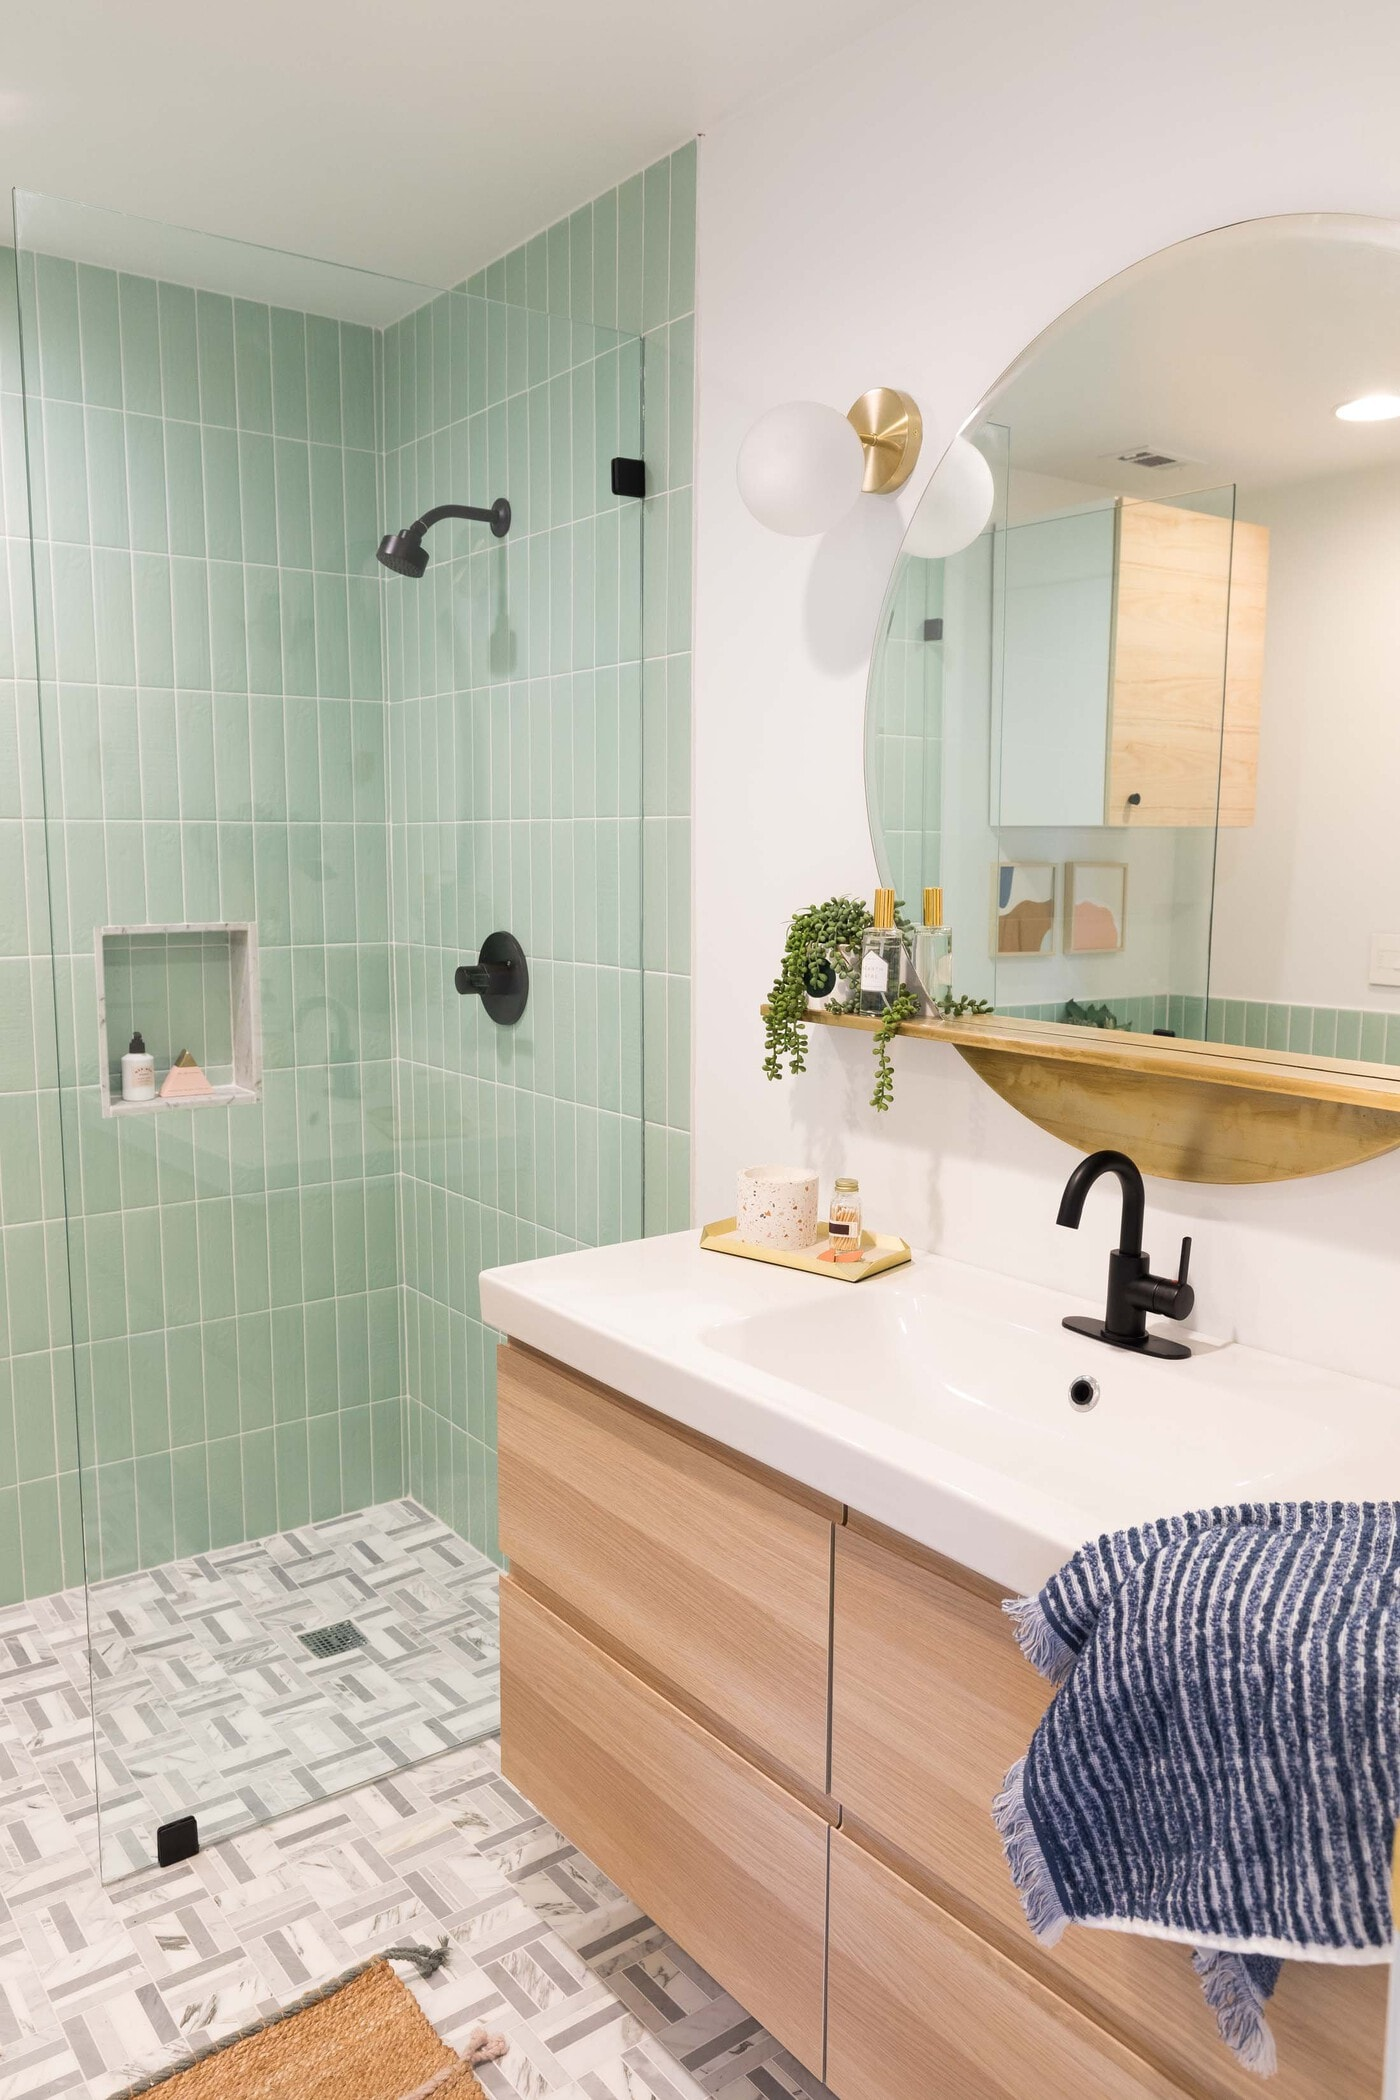 Our House Guest Bathroom Remodel Reveal Sugar Cloth